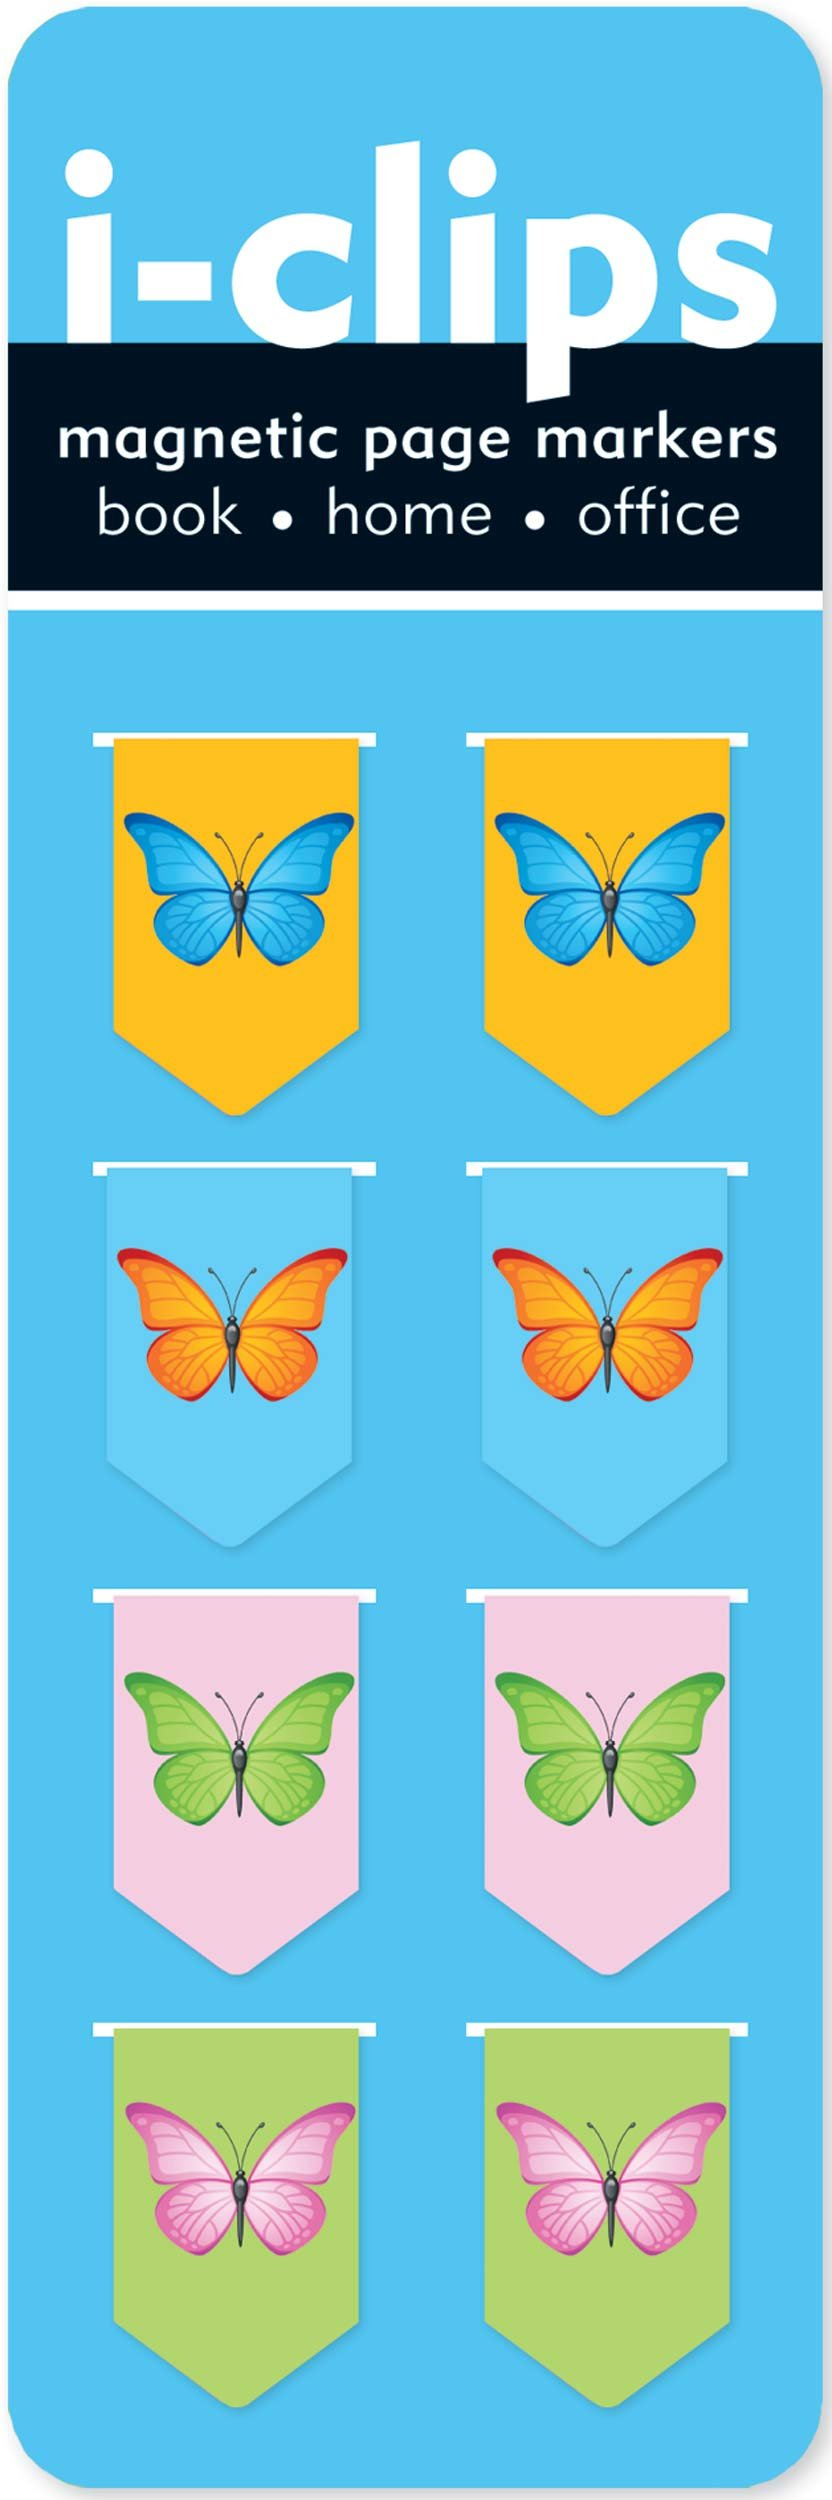 Butterflies i-Clip Magnetic Page Markers (Set of 8 Magnetic Bookmarks) Bookmark – Jul 25 2010 Peter Pauper Press 1441303774 Unclassifiable: WZ BIC Nonfiction /